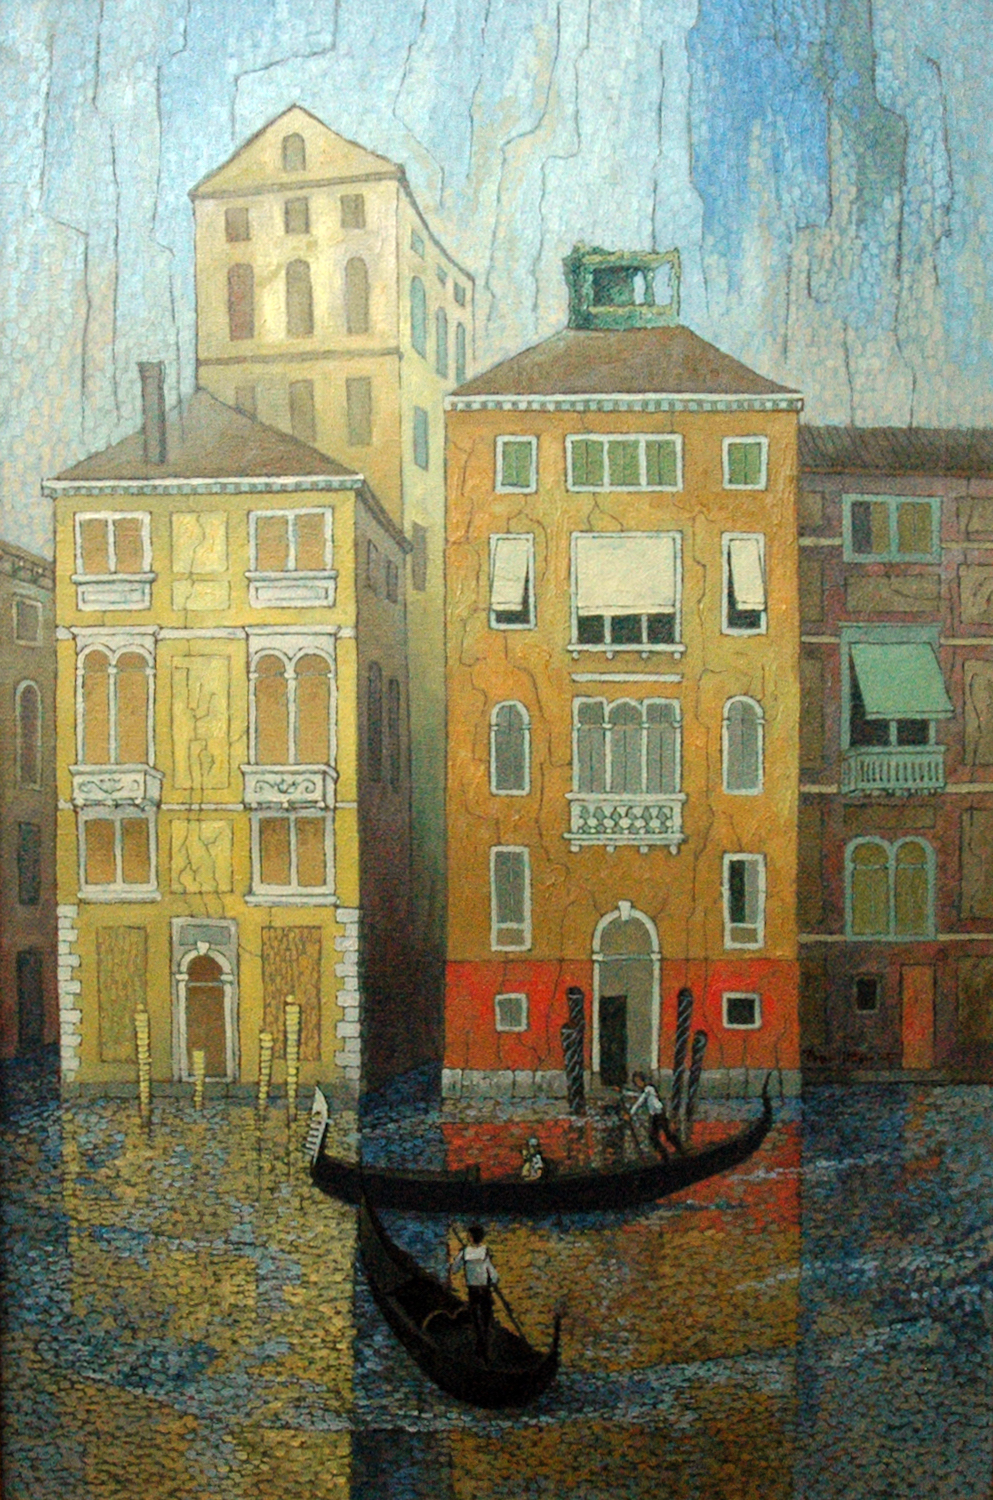 Venice, 28 x 20, oil on canvas